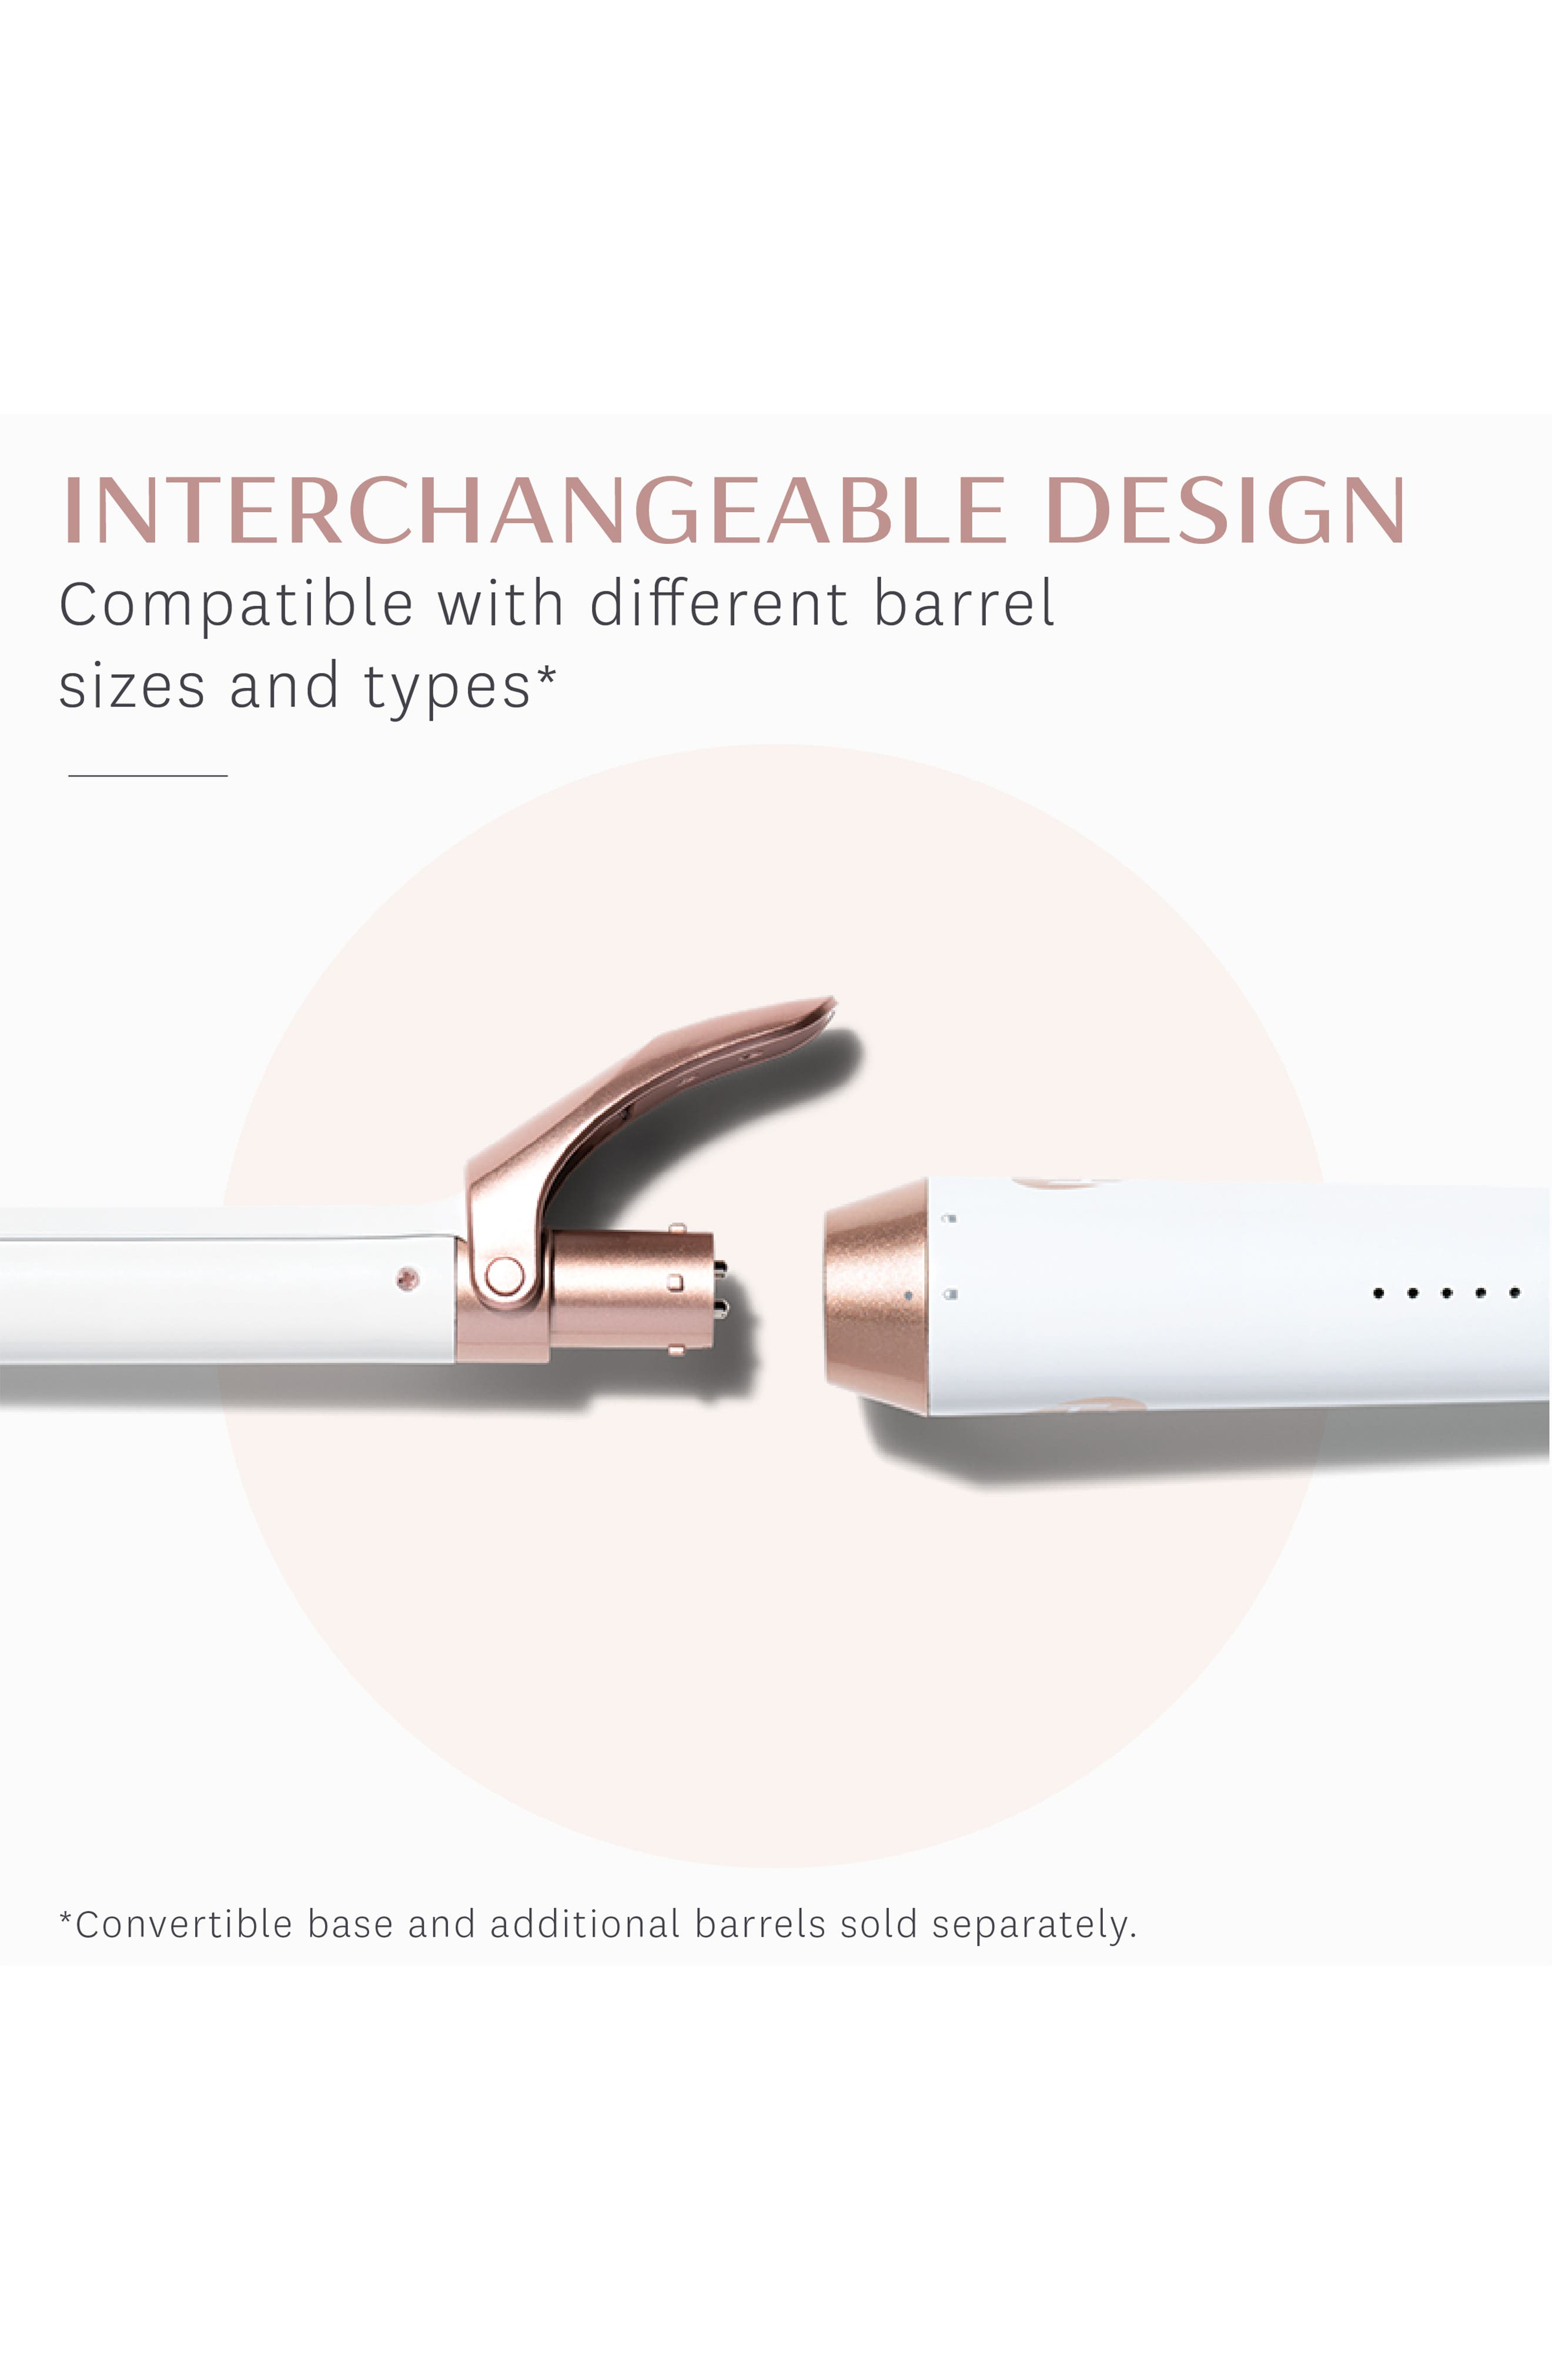 Defined Curls 1-Inch Interchangeable Clip Curling Iron Barrel,                             Alternate thumbnail 2, color,                             NO COLOR